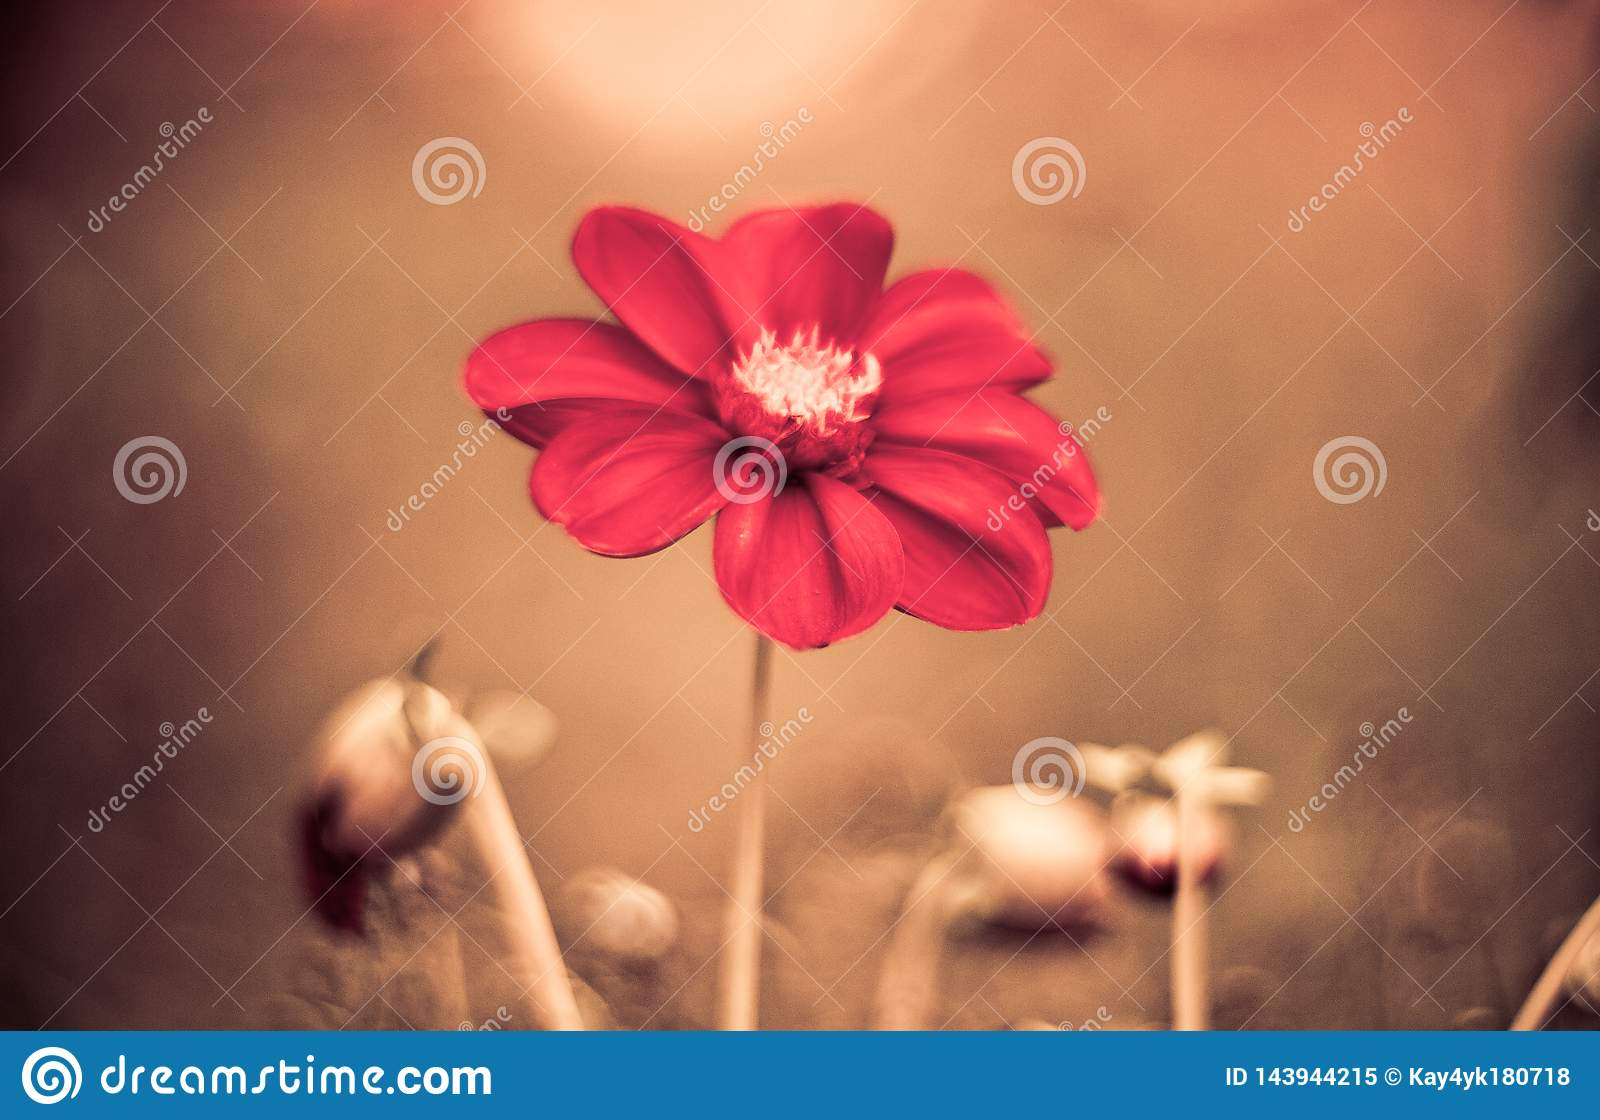 Beautiful red daisy flower slowly spinning on a rotating brown background. Top view